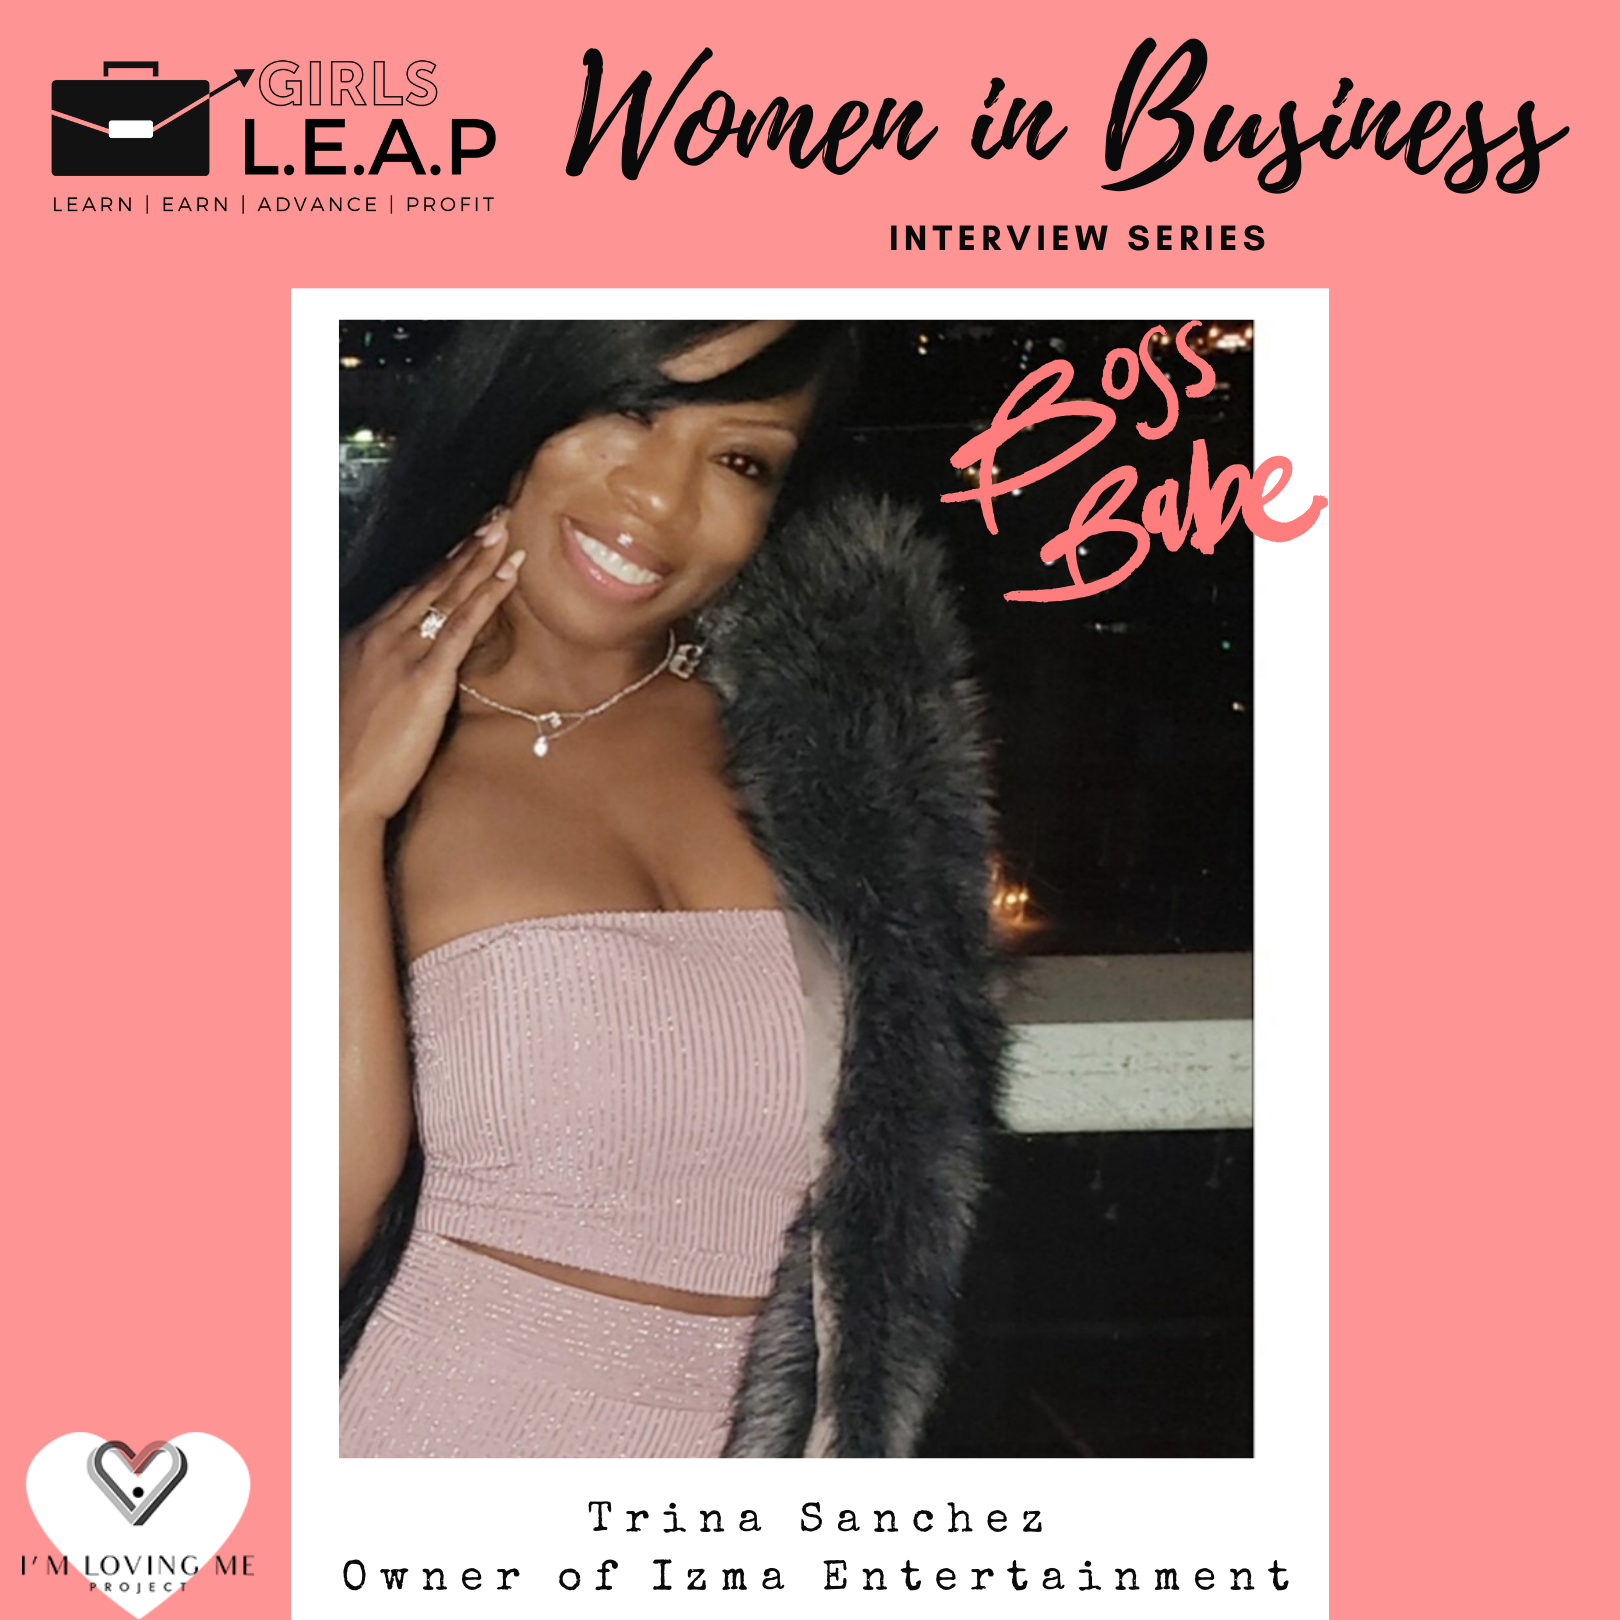 Women in Business Wednesday: Trina Sanchez